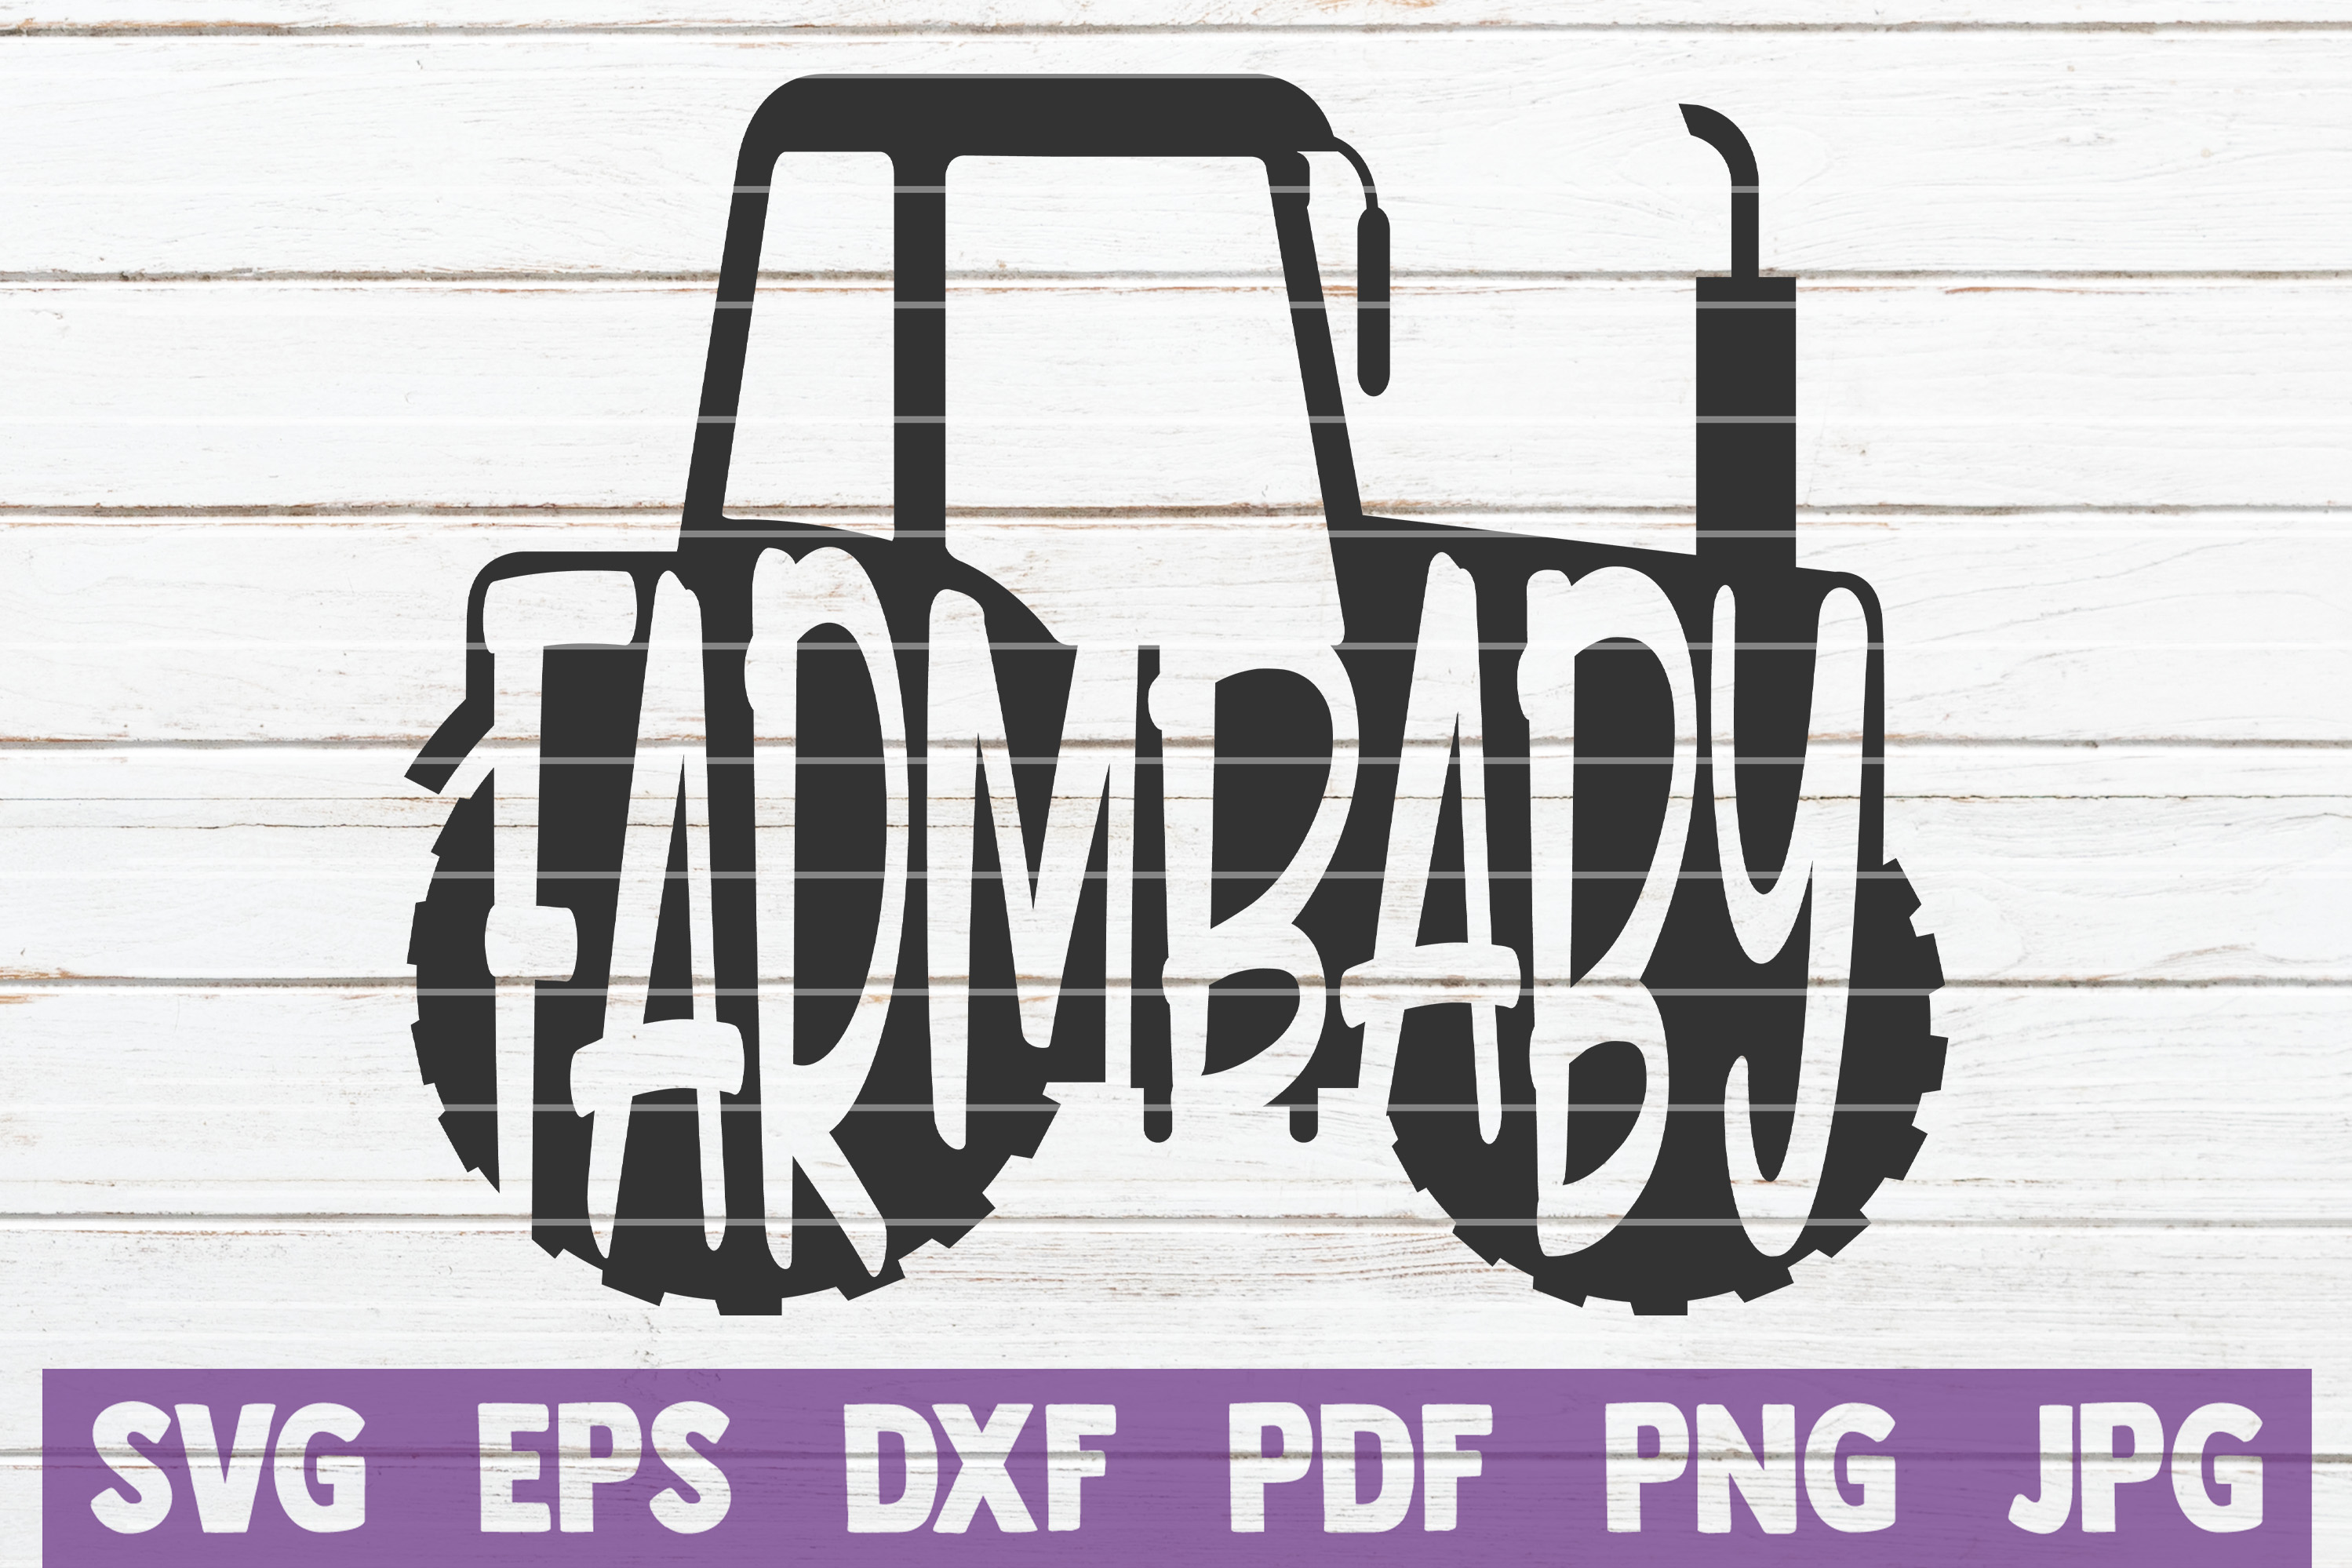 Download Free Farm Baby Svg Cut File Graphic By Mintymarshmallows Creative for Cricut Explore, Silhouette and other cutting machines.